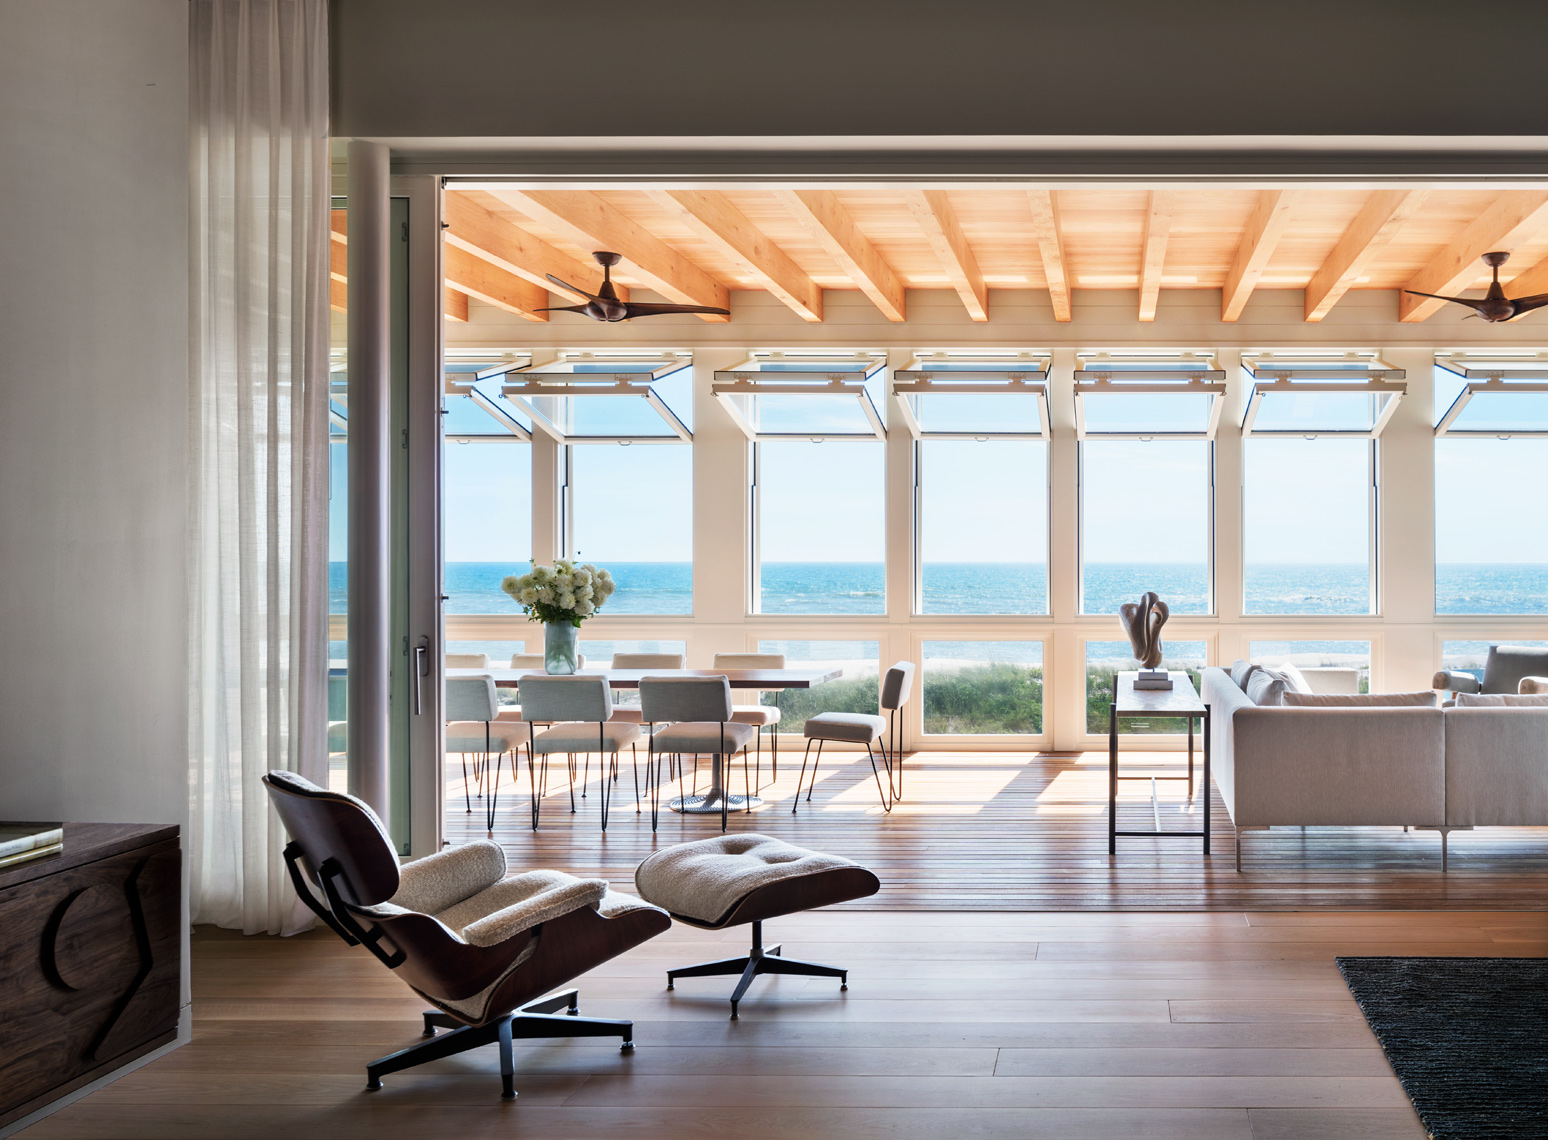 Luxury Living, Steven Harris, Hamptons, Ocean Views